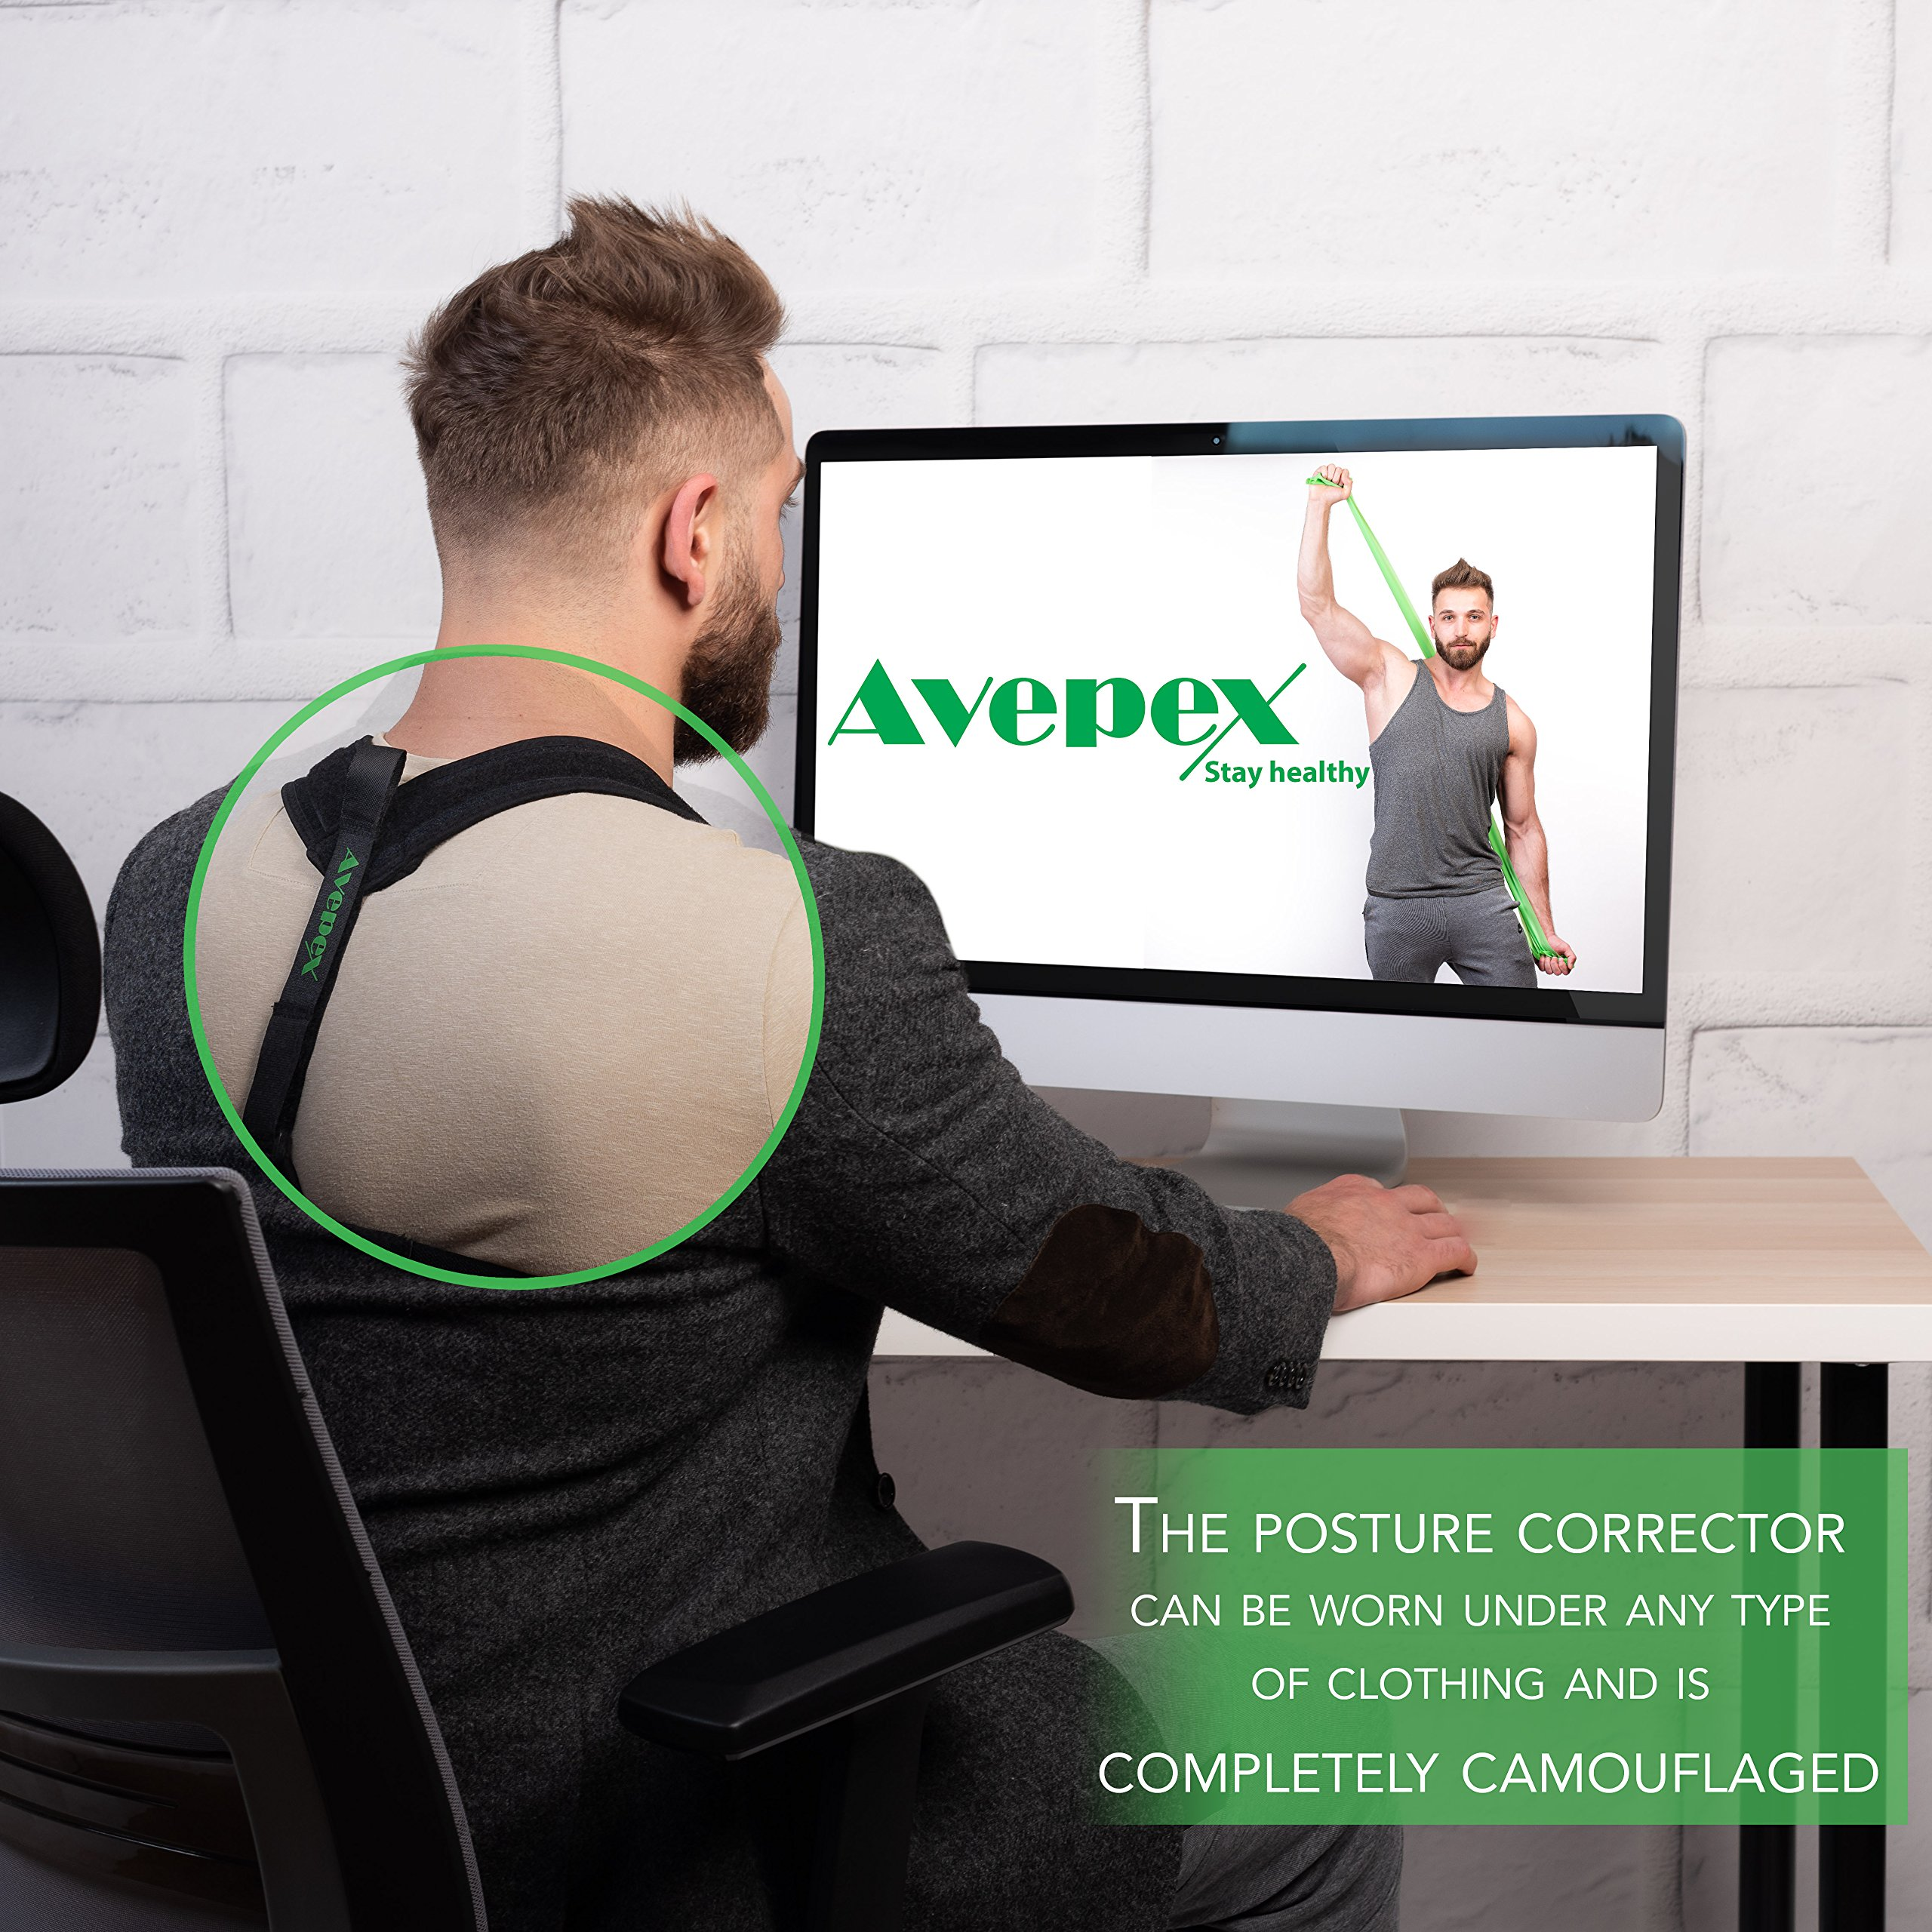 Avepex Posture Corrector Back Clavicle Brace with A Resistant Band | Breathable, Adjustable Fasteners, Discreet Fit | Relieve Shoulder Pains, Minimize Slouching, Realign Your Spine by avepex